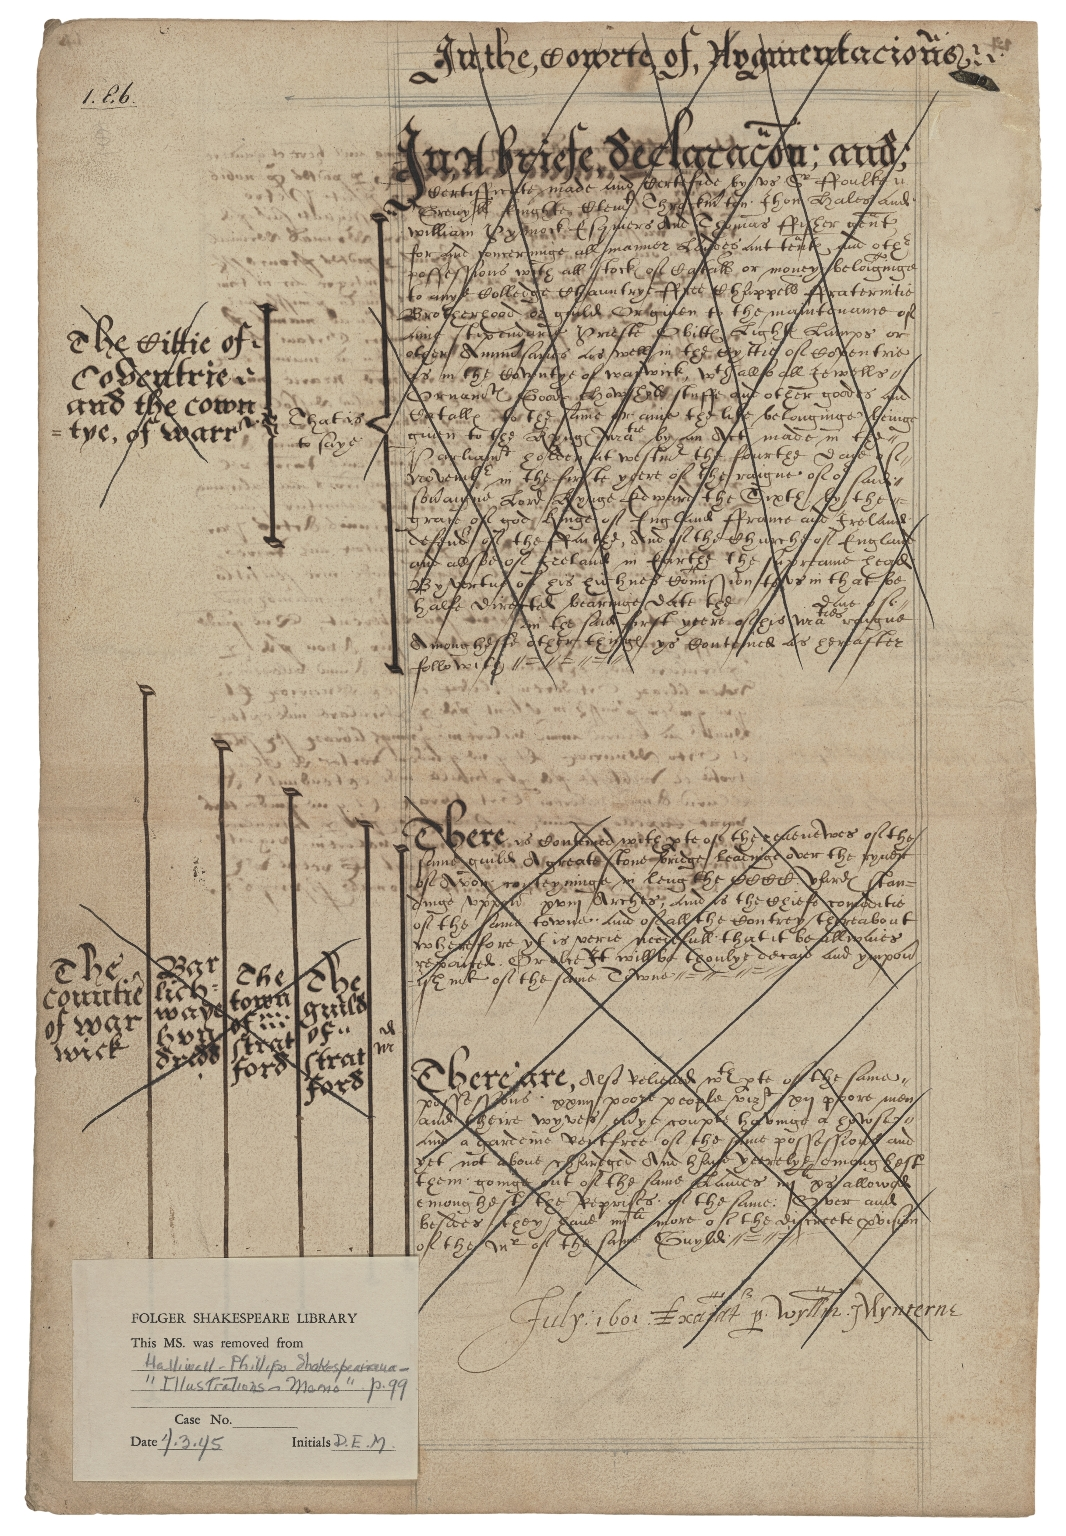 Copy of Letters patent from Elizabeth I, Queen of England, to Peter Grevill and Peter Rosewell